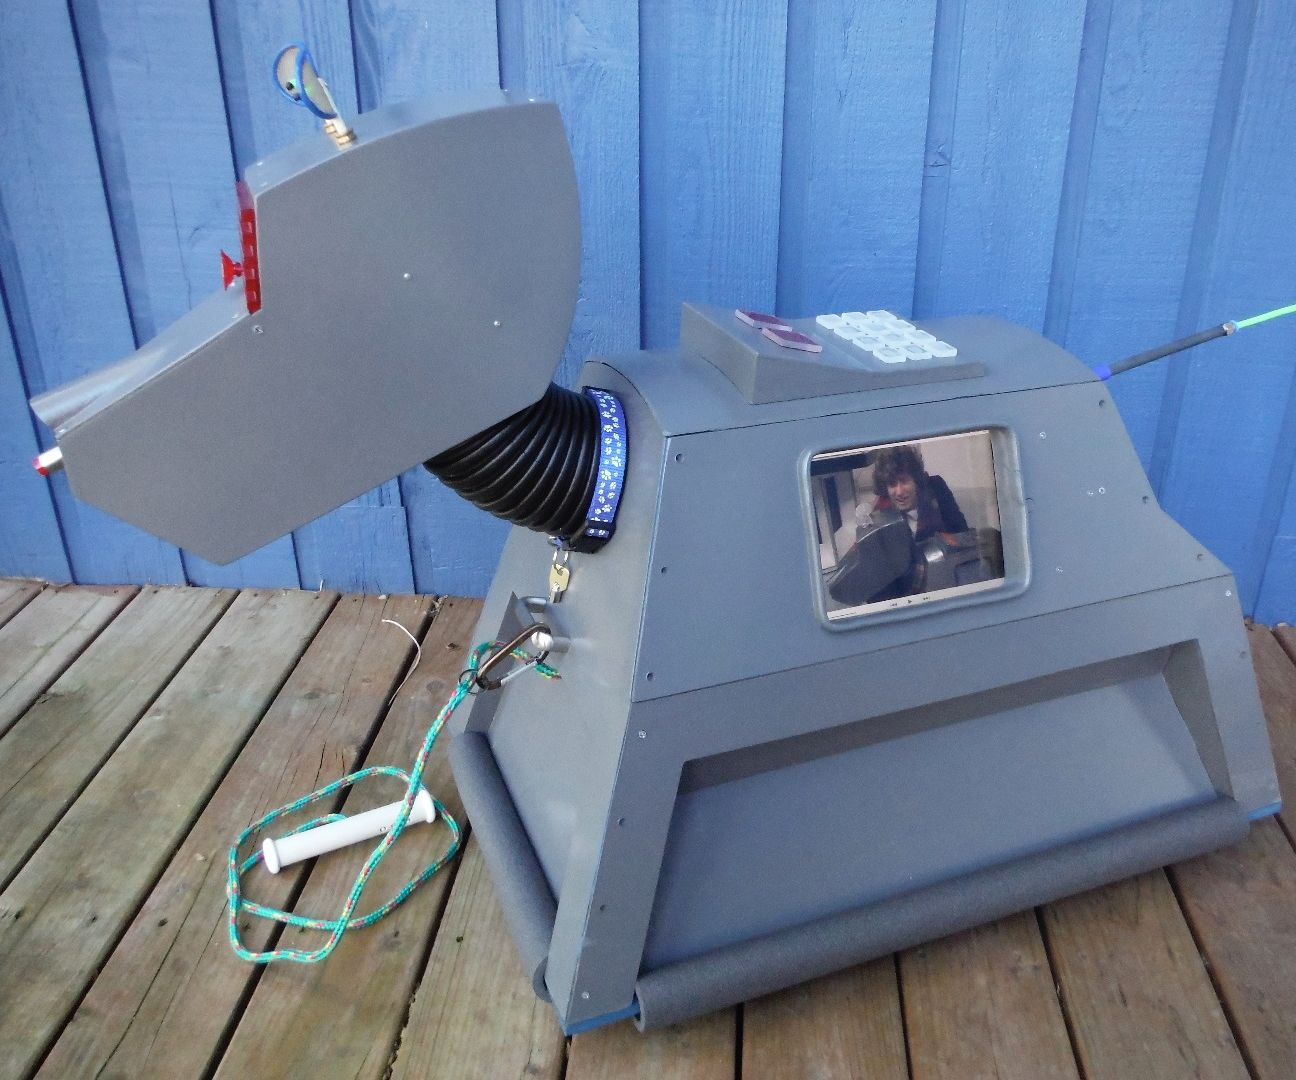 K-9 from Doctor Who